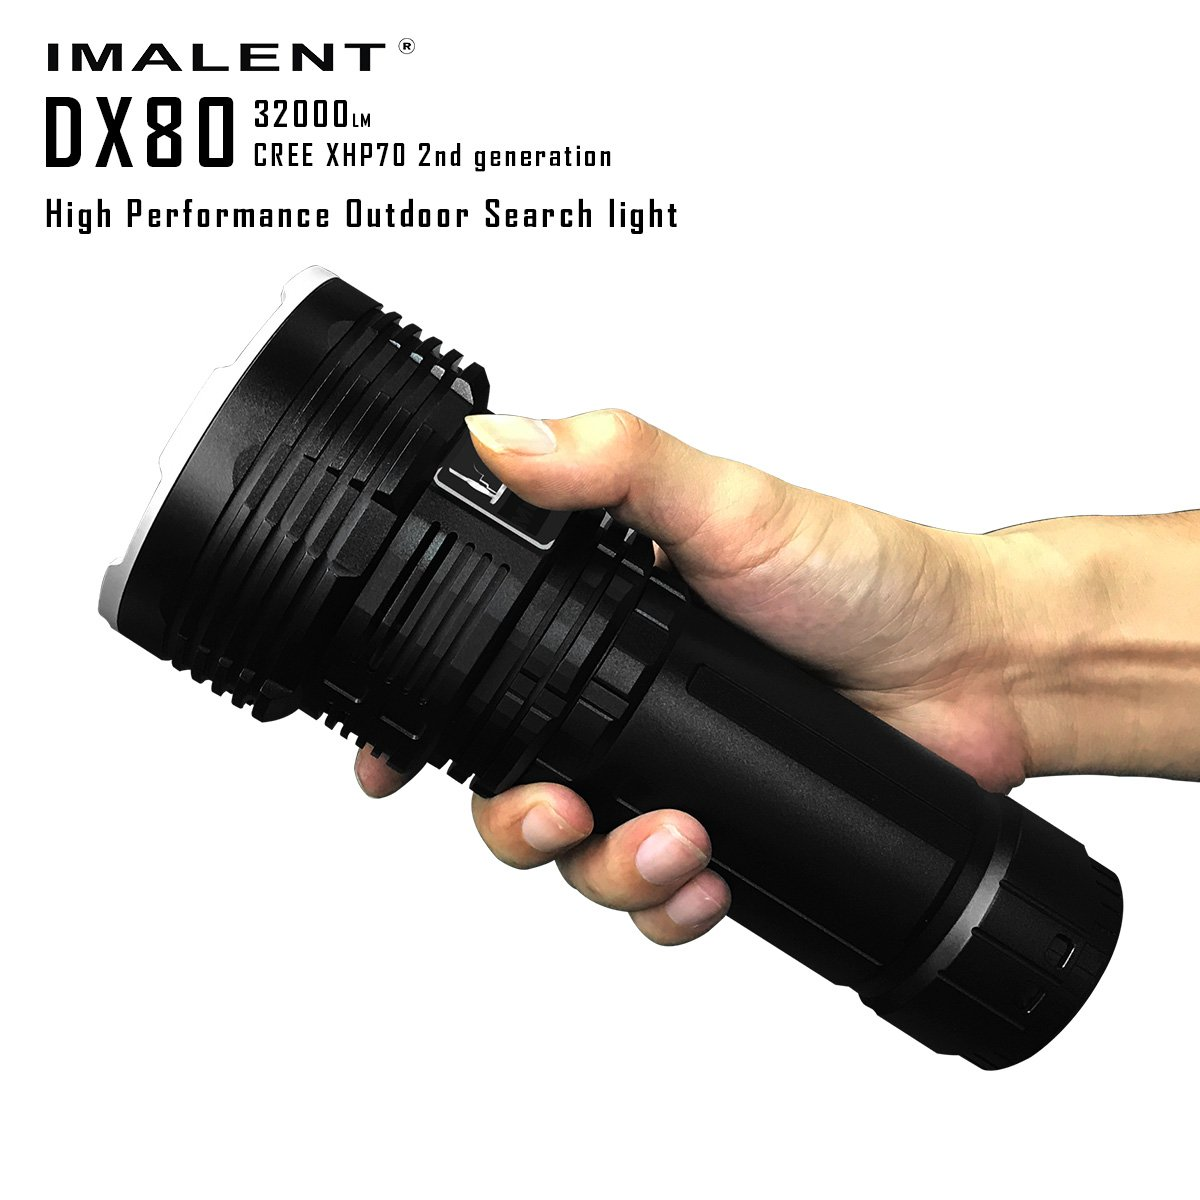 Imalent DX80 Kerry XHP70 32000lm The Most Powerful LED Flashlight Gives You The Feeling of The Day